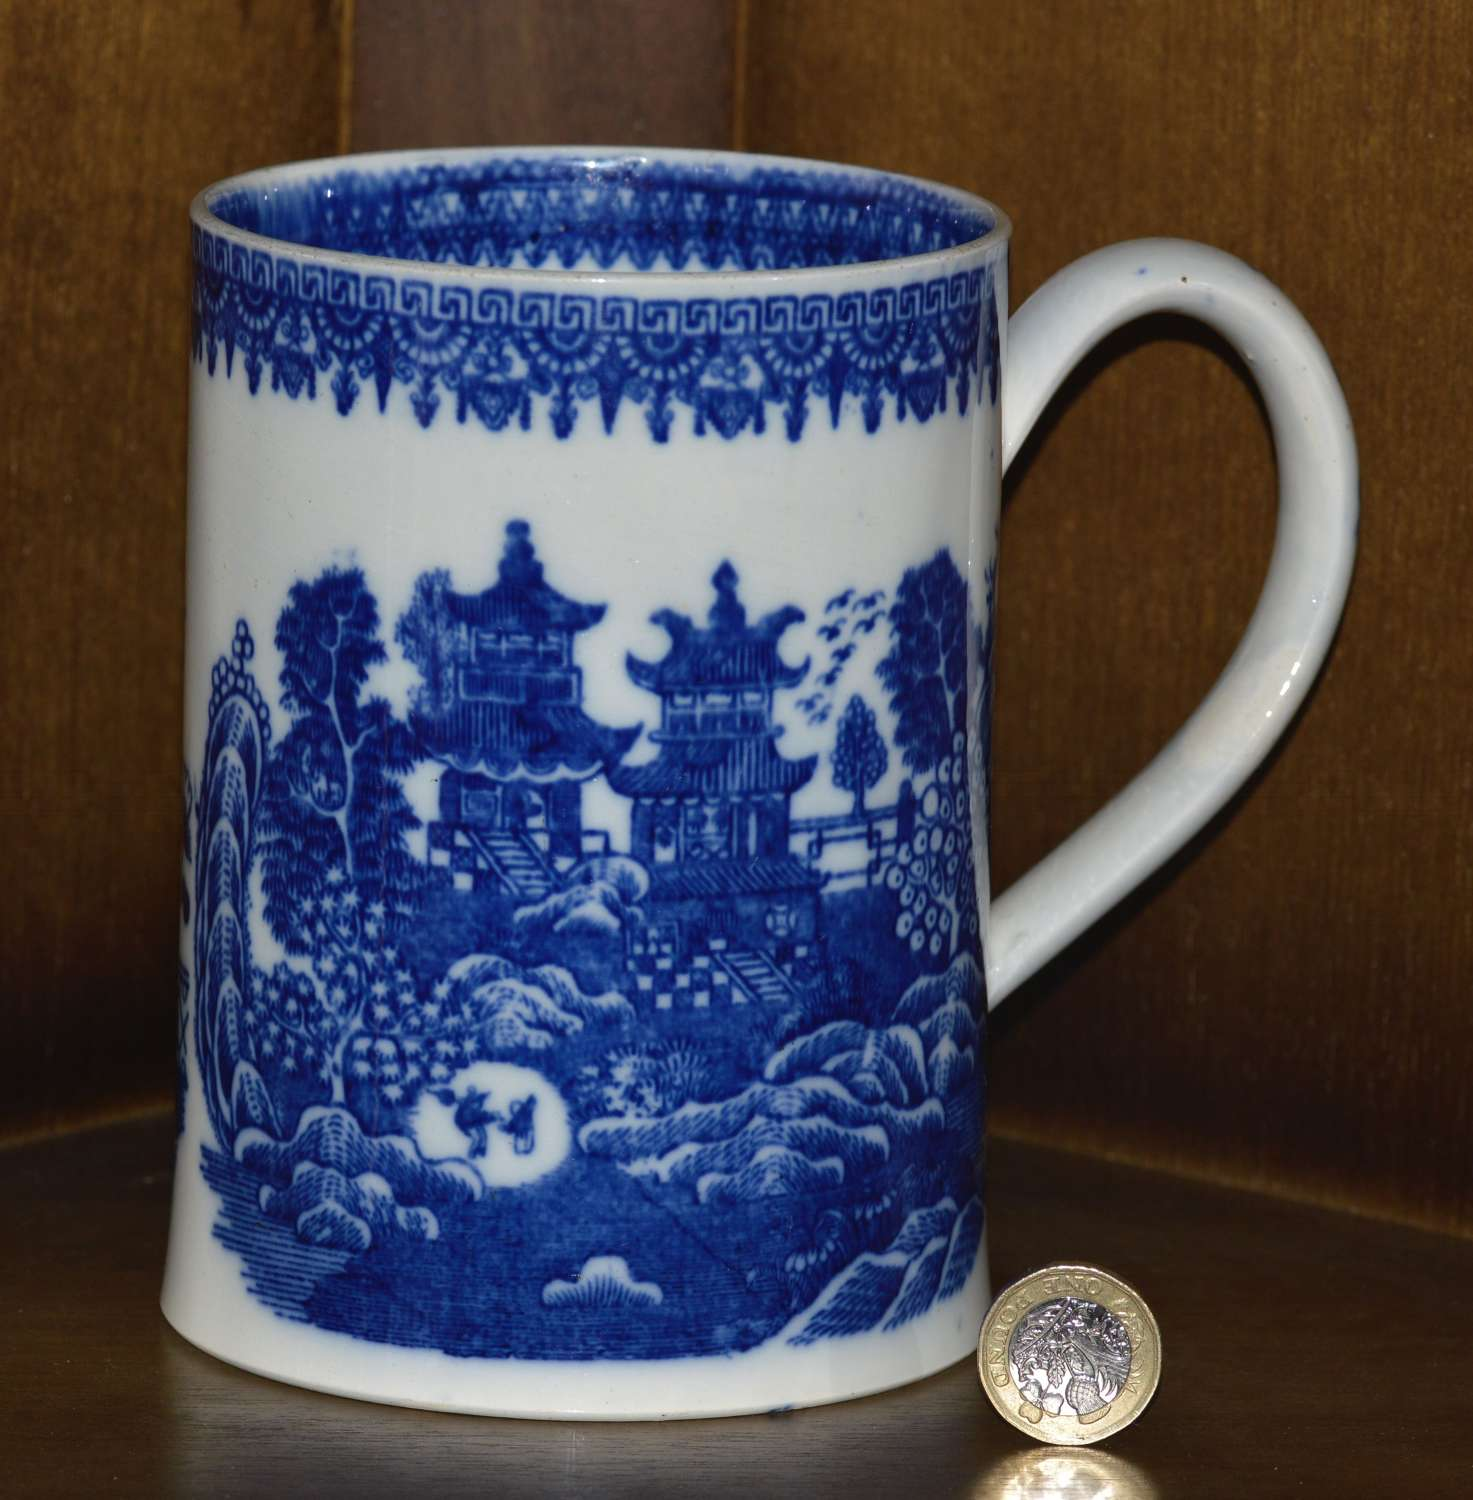 Late 19th Century Pearlware Cider Mug With Blue and White Chinoiserie